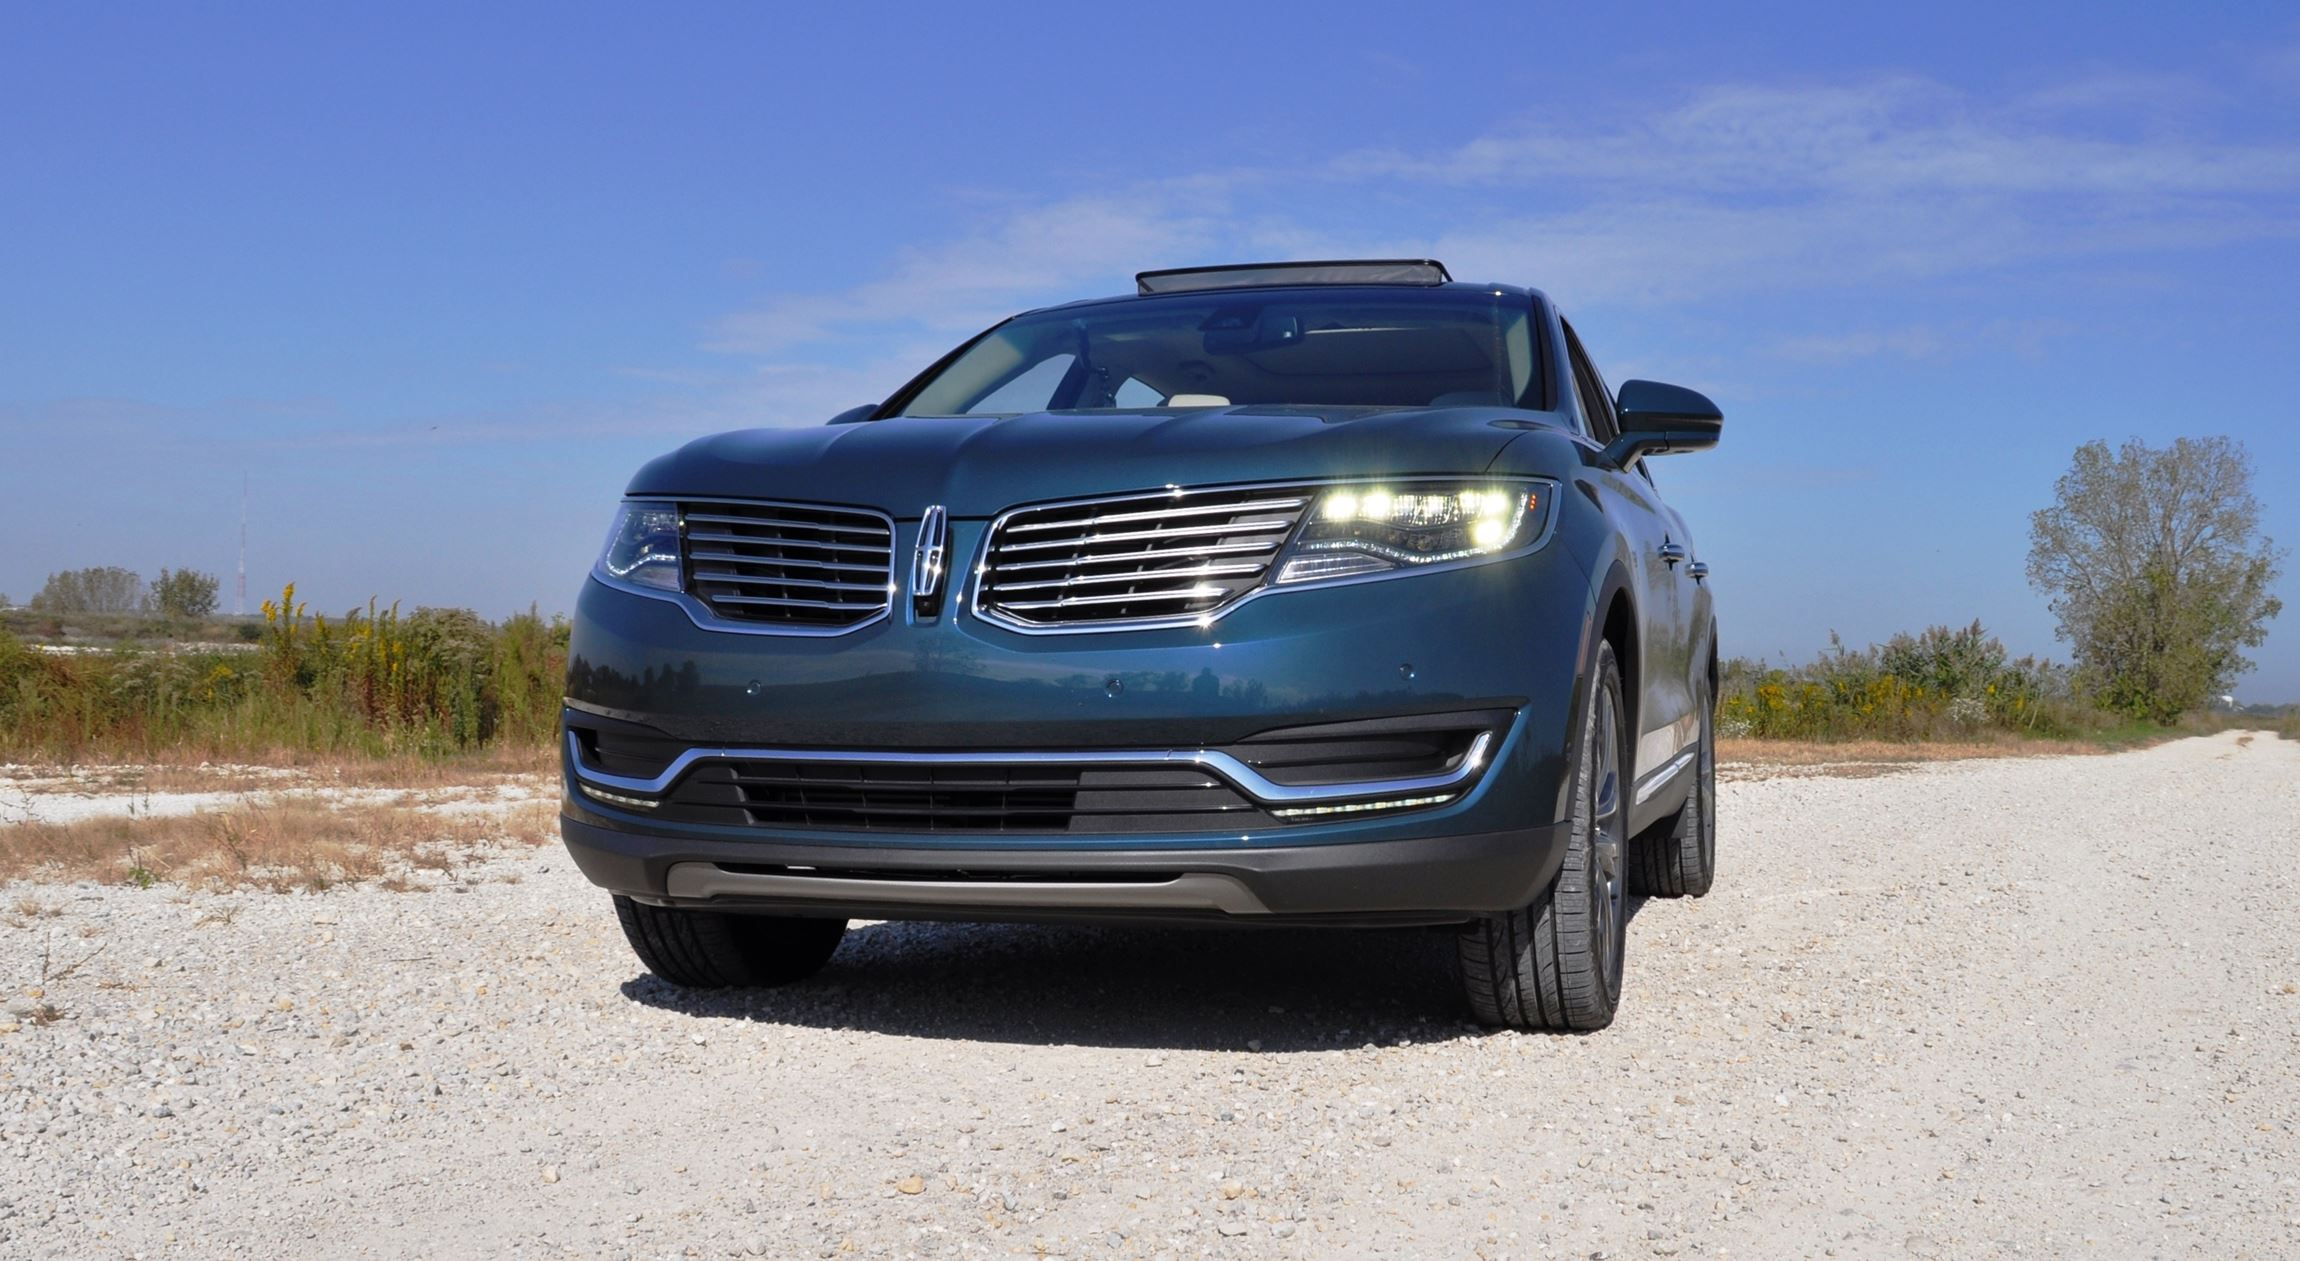 mkx reviews mdx cars rating and trend motor nautilus quarter news three front lincoln